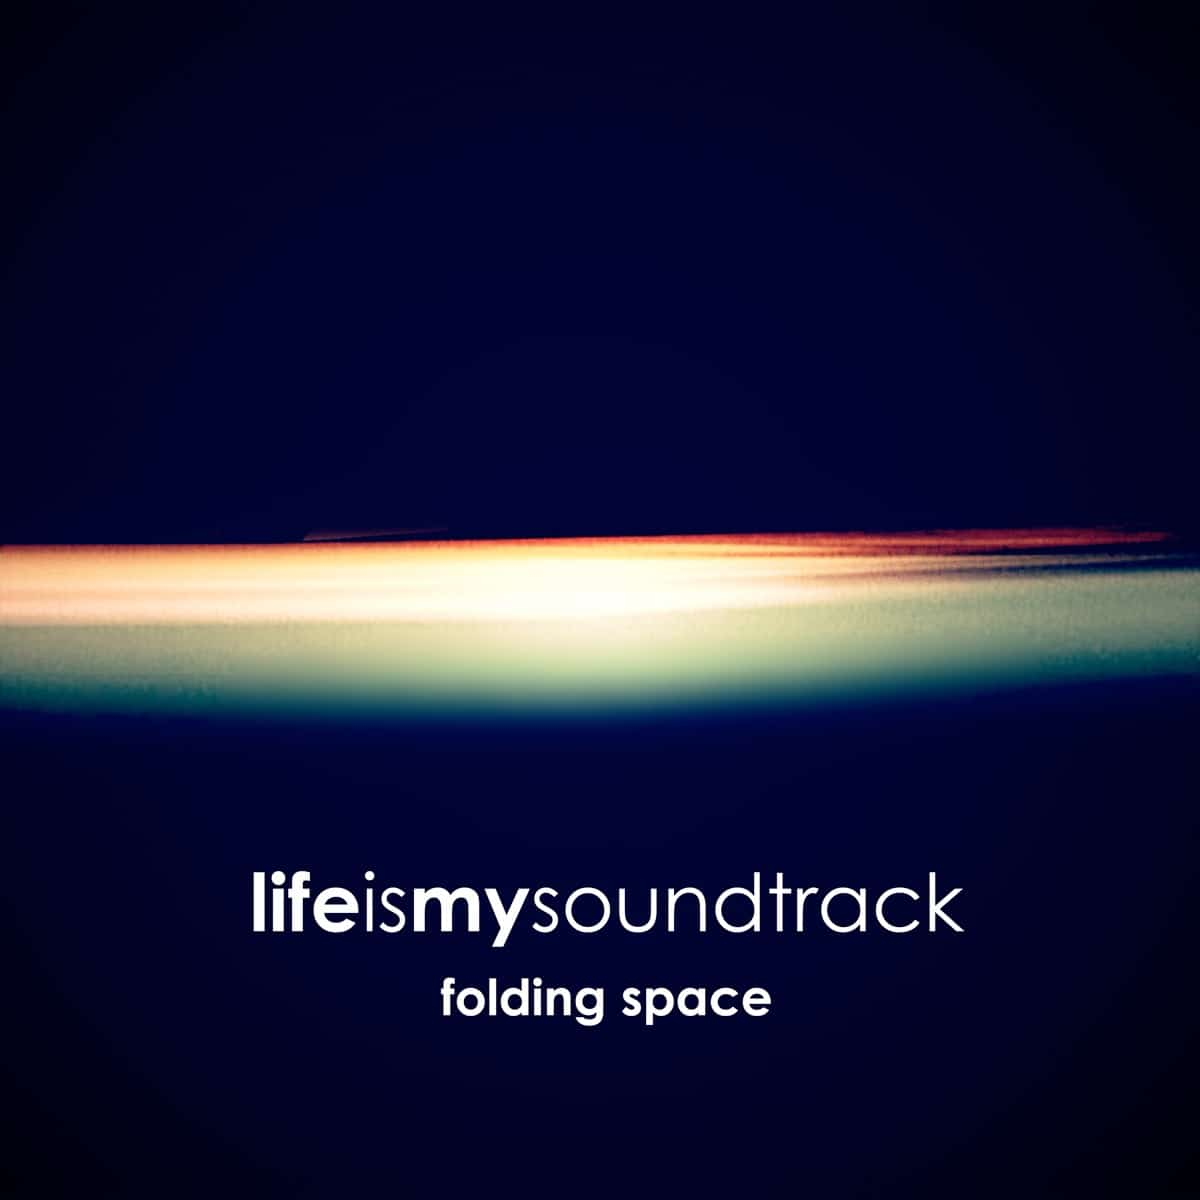 The album Folding Space by Life Is My Soundtrack - Atmospheric synthesizers and drum beats, combined with angelic arpeggios